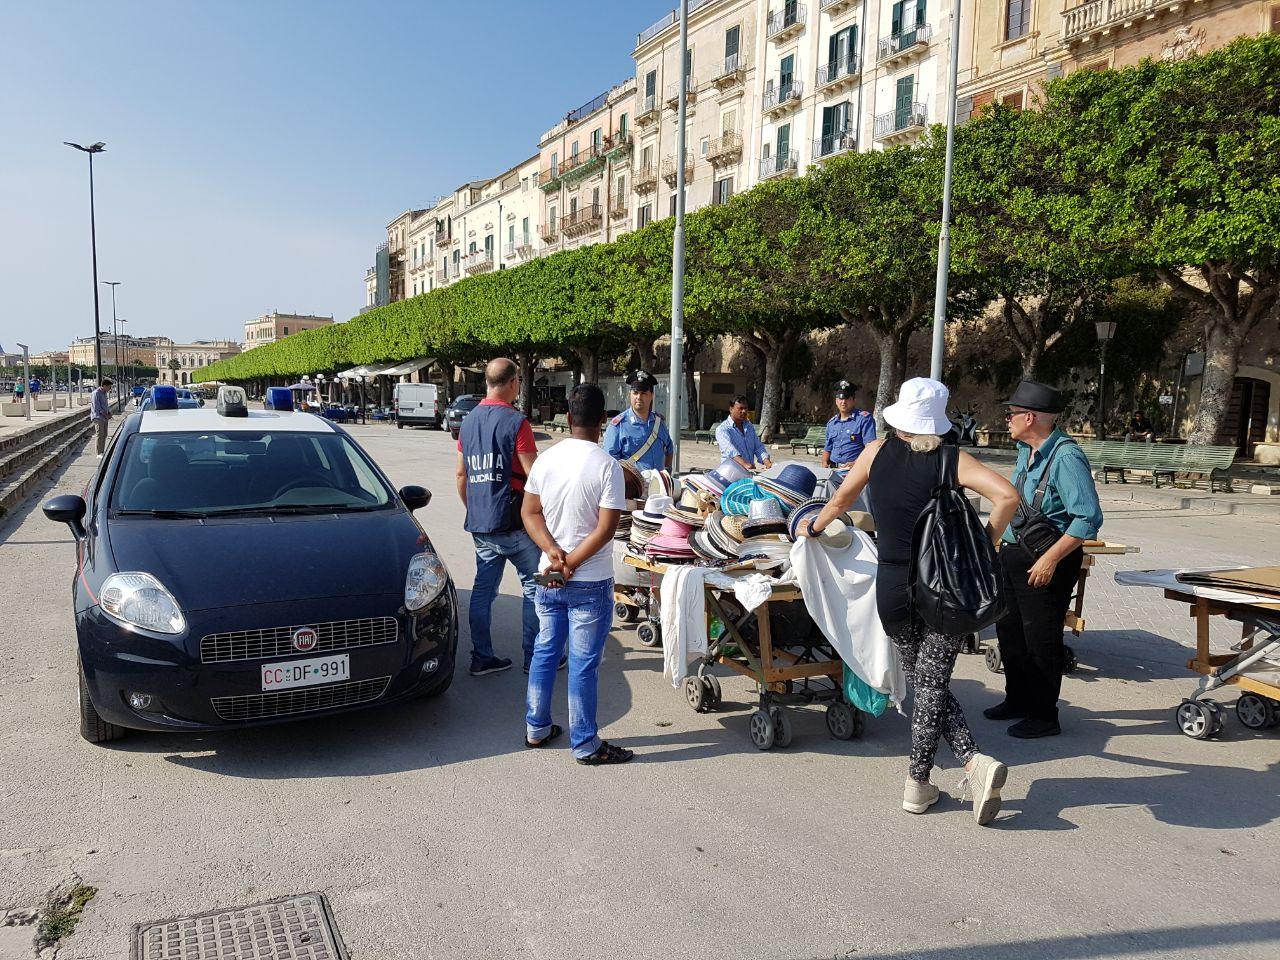 Abusivismo commerciale a Siracusa, maxi sequestro di merce